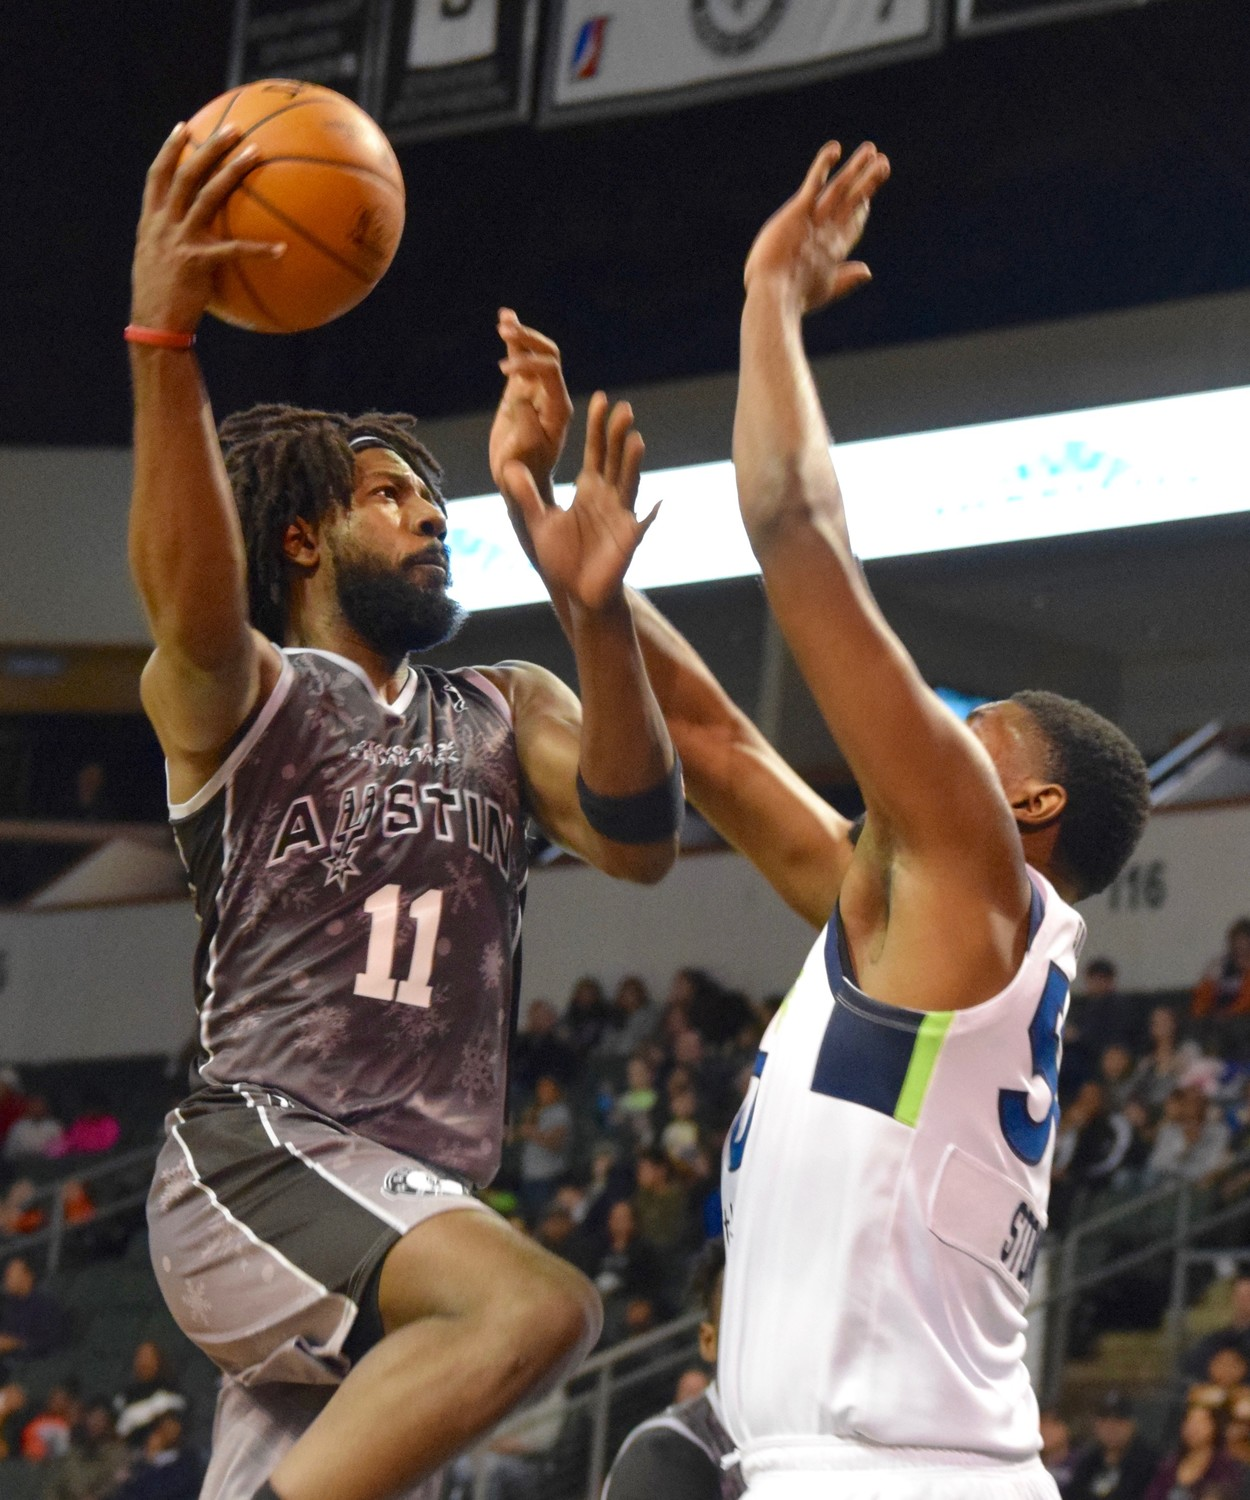 John Holland scored 12 points and the Austin Spurs beat the Iowa Wolves 118-116 on Saturday night.